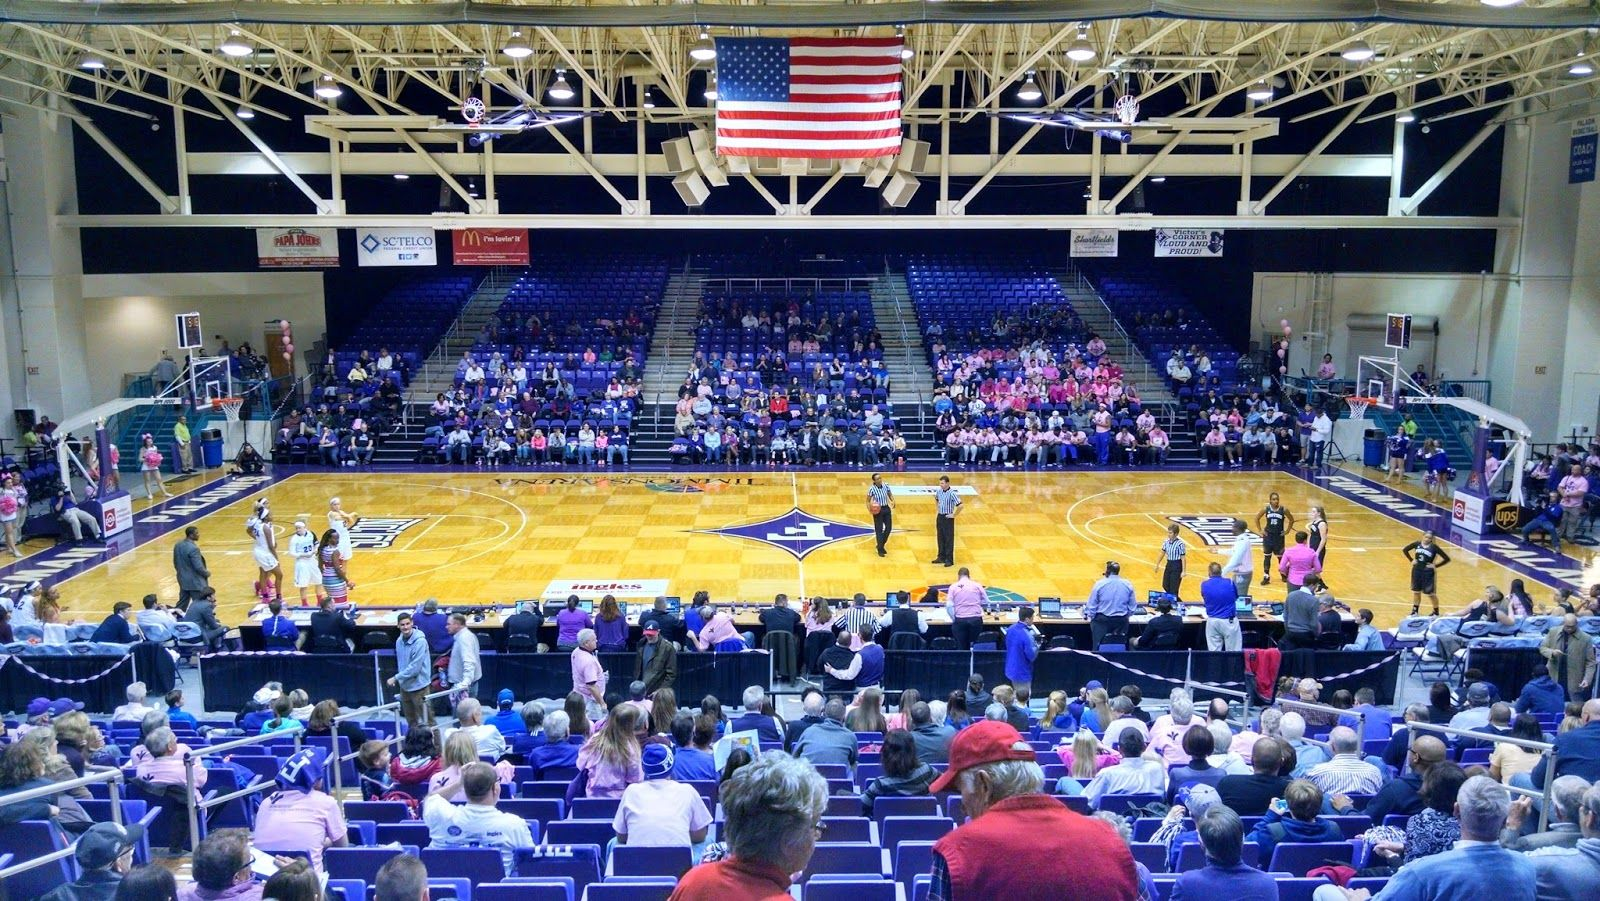 Timmons Arena Greenville Sc February 10 2018 The Wofford Terriers Lost To The Furman Paladins 76 52 In A Southern Confere Paladin Furman Paladins Stadium